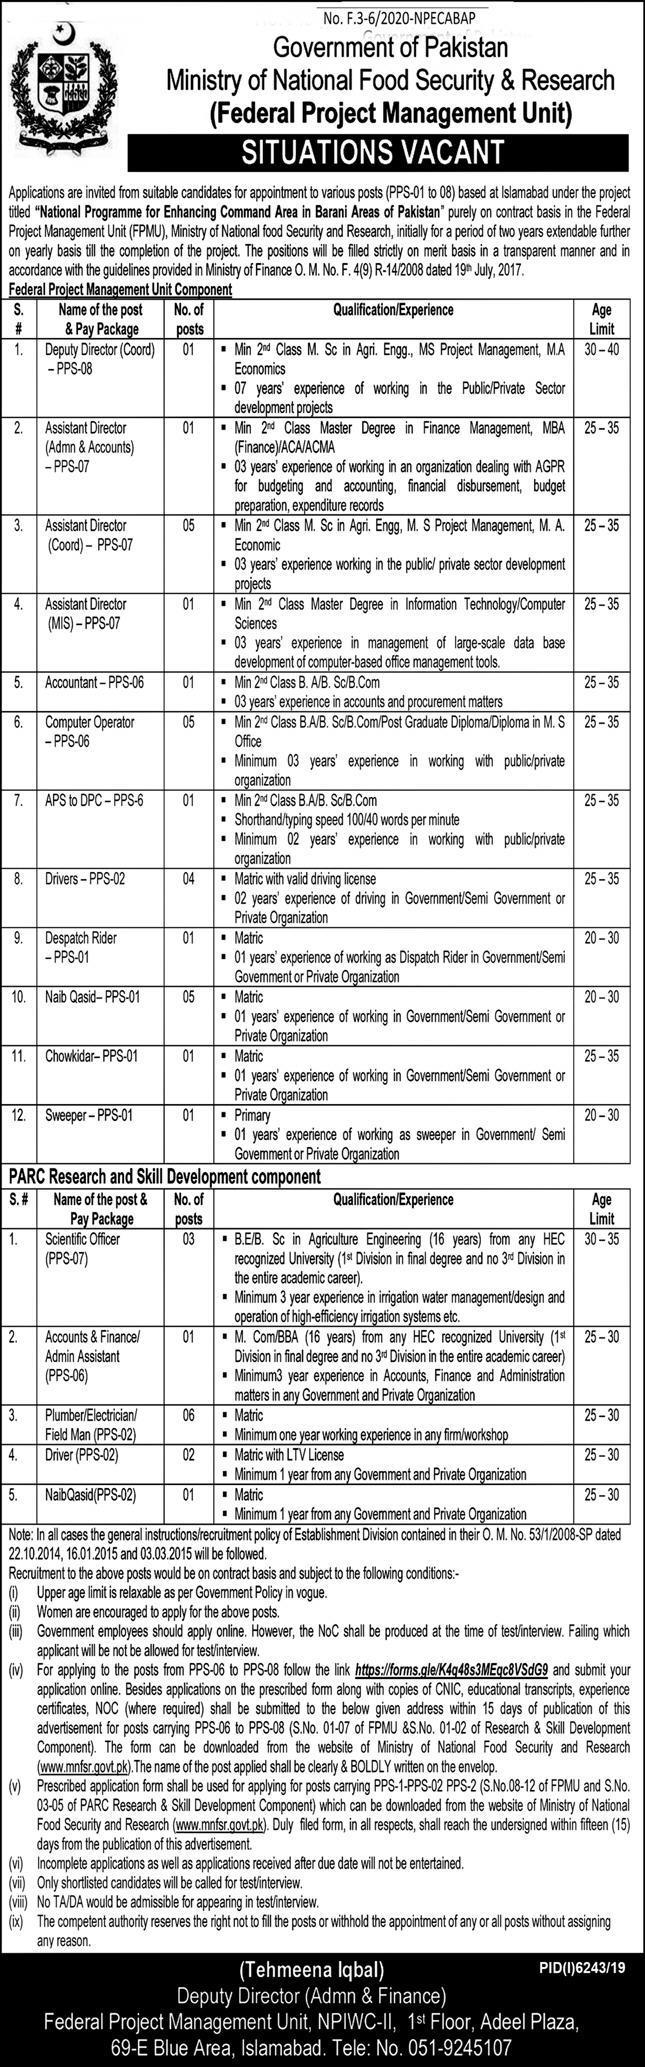 Ministry of National Food Security & Research jobs newspaper ad for Assistant Director in Islamabad